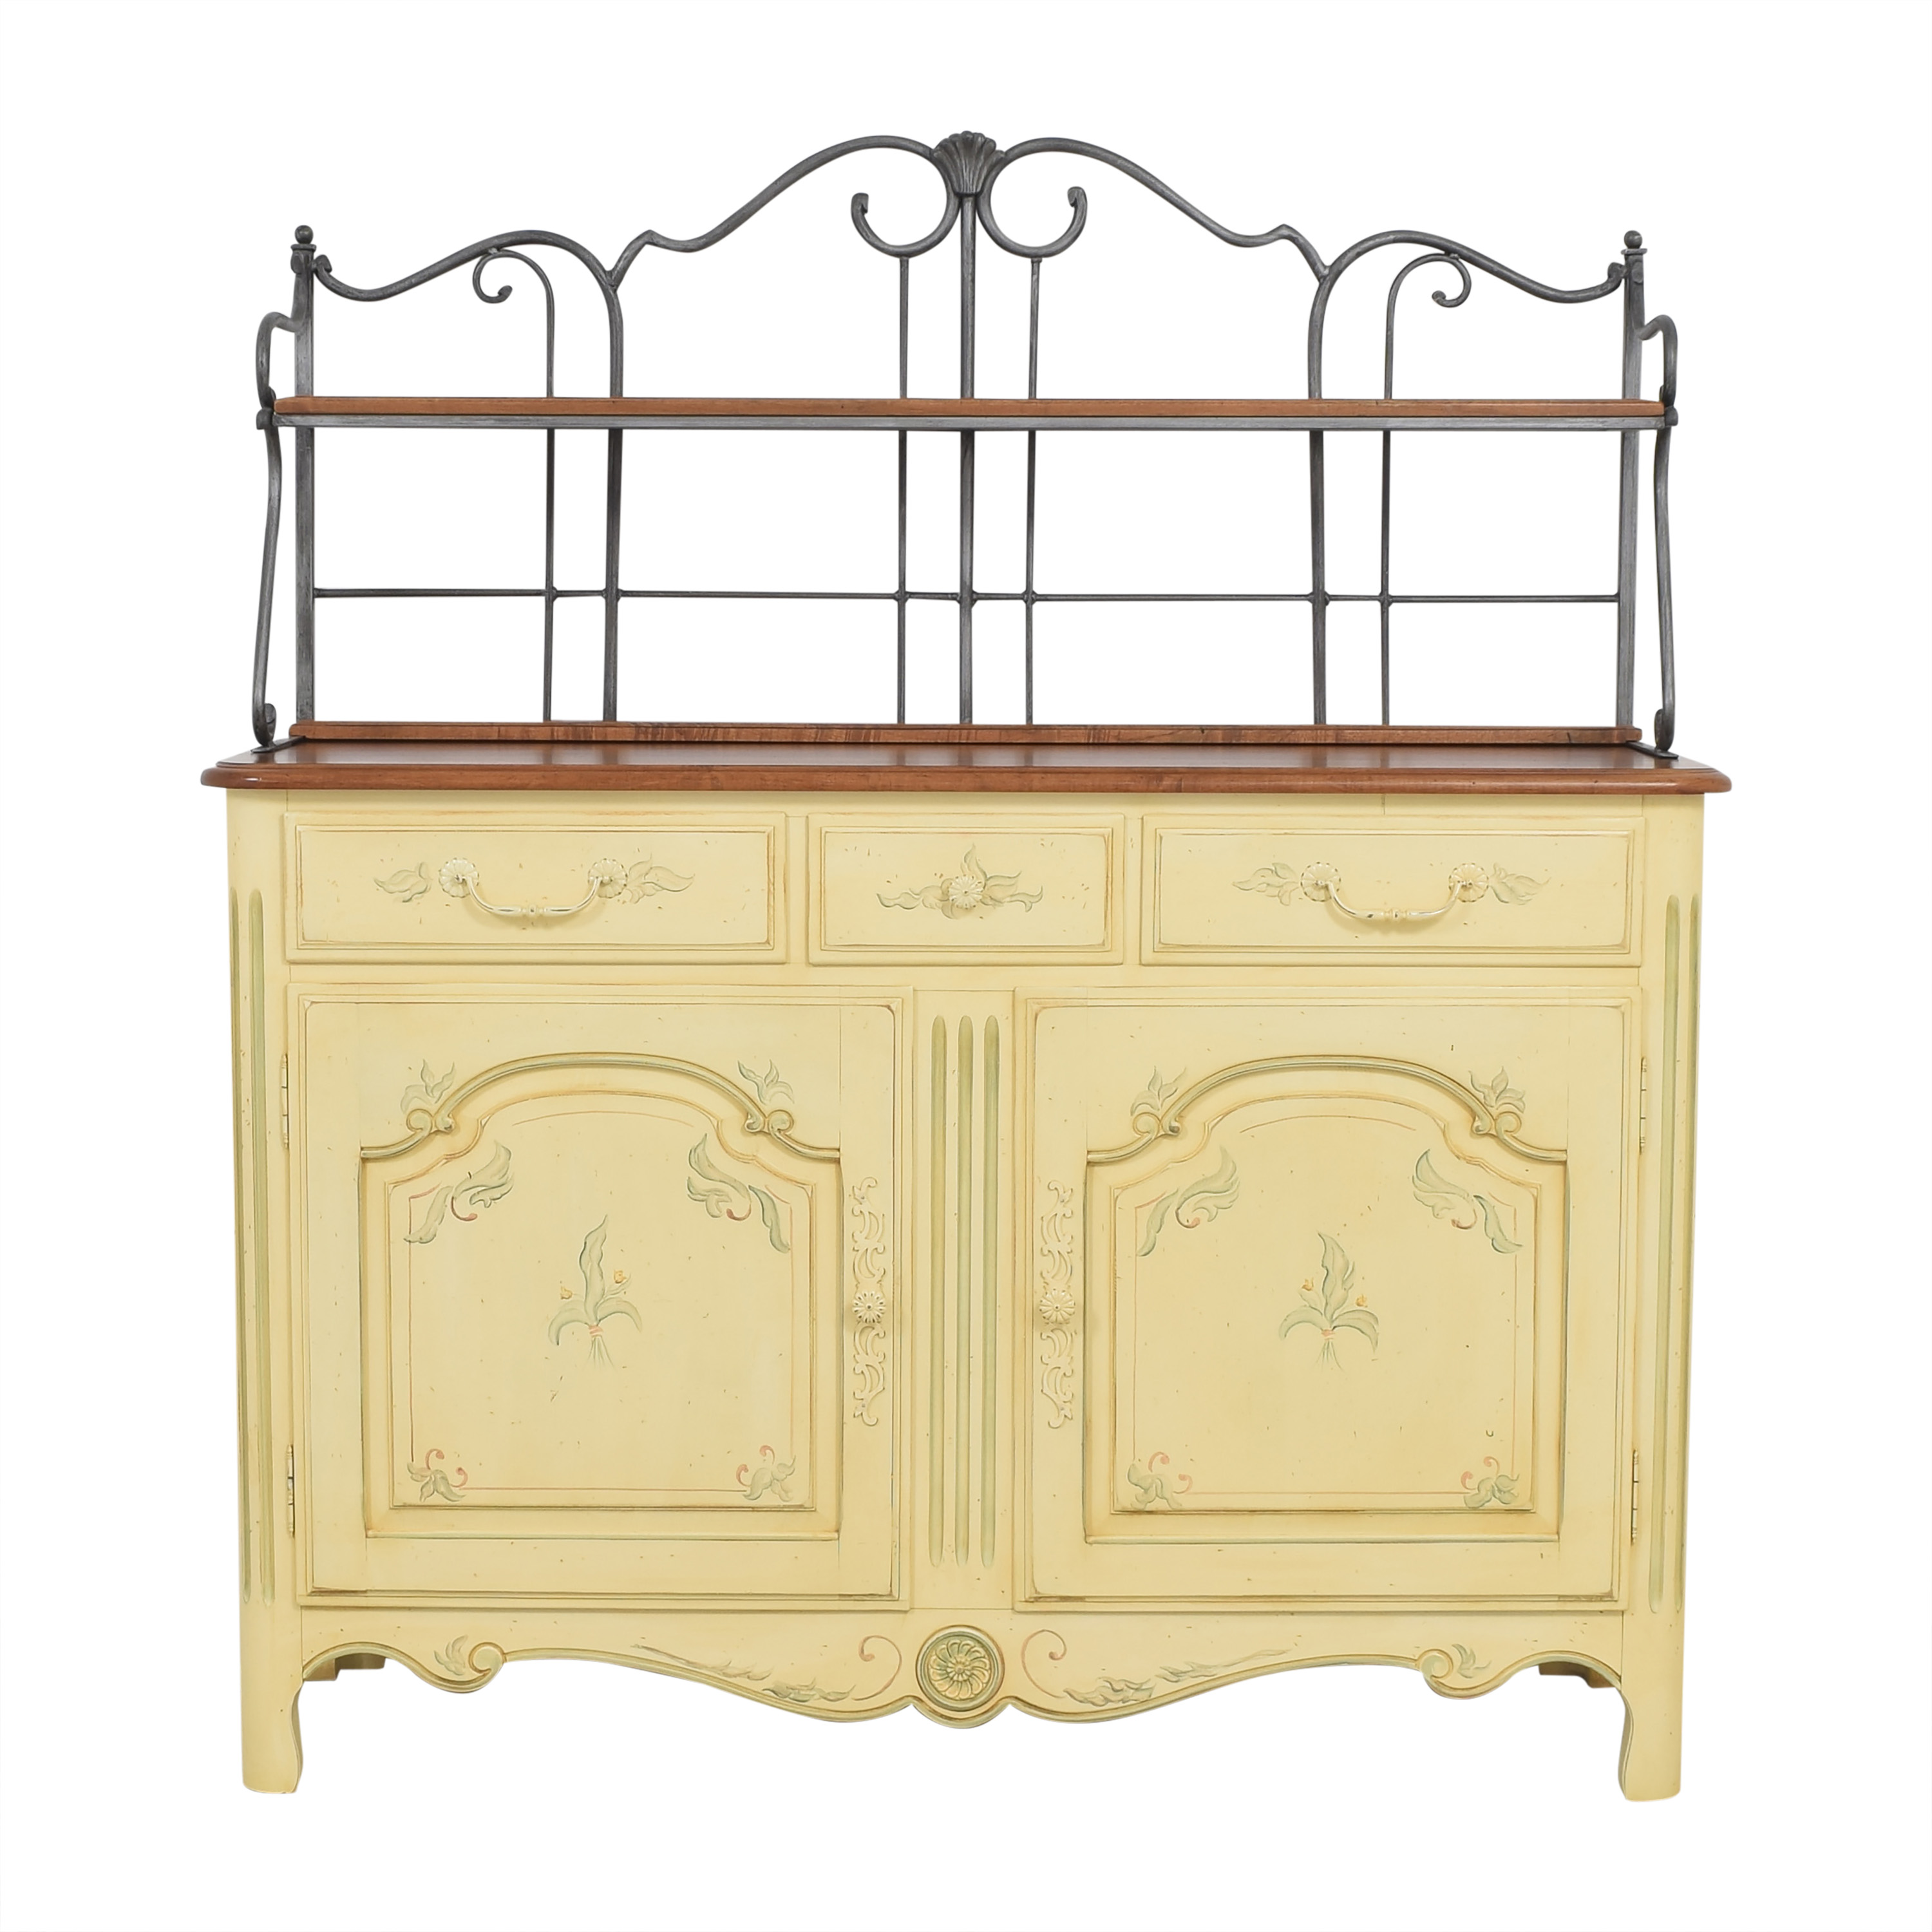 Ethan Allen Ethan Allen Legacy Country French Server Buffet discount